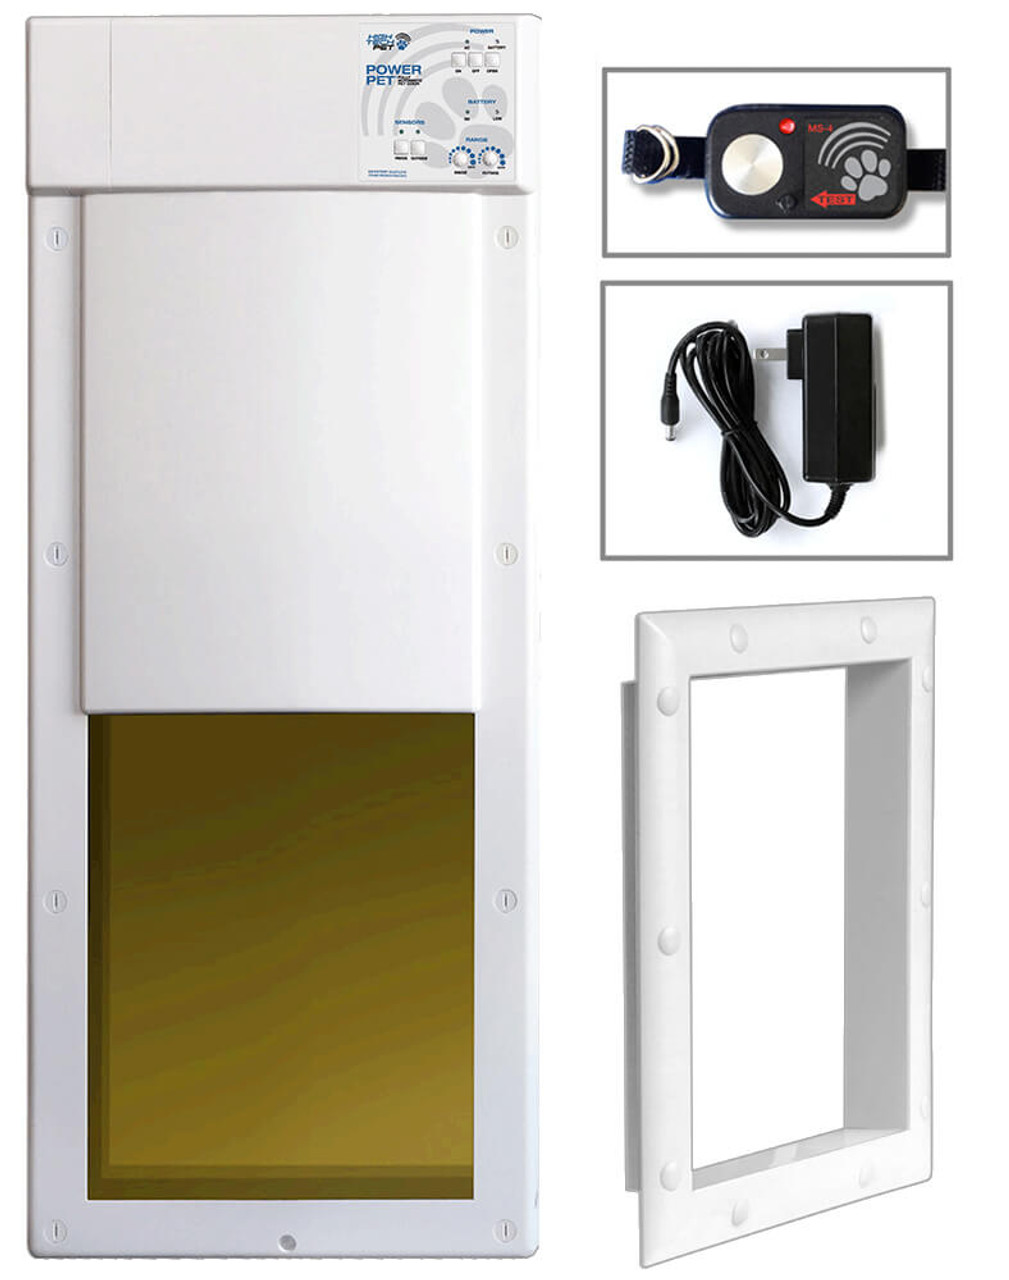 High Tech Electronic Motorized Dog Doors can be installed in doors or walls